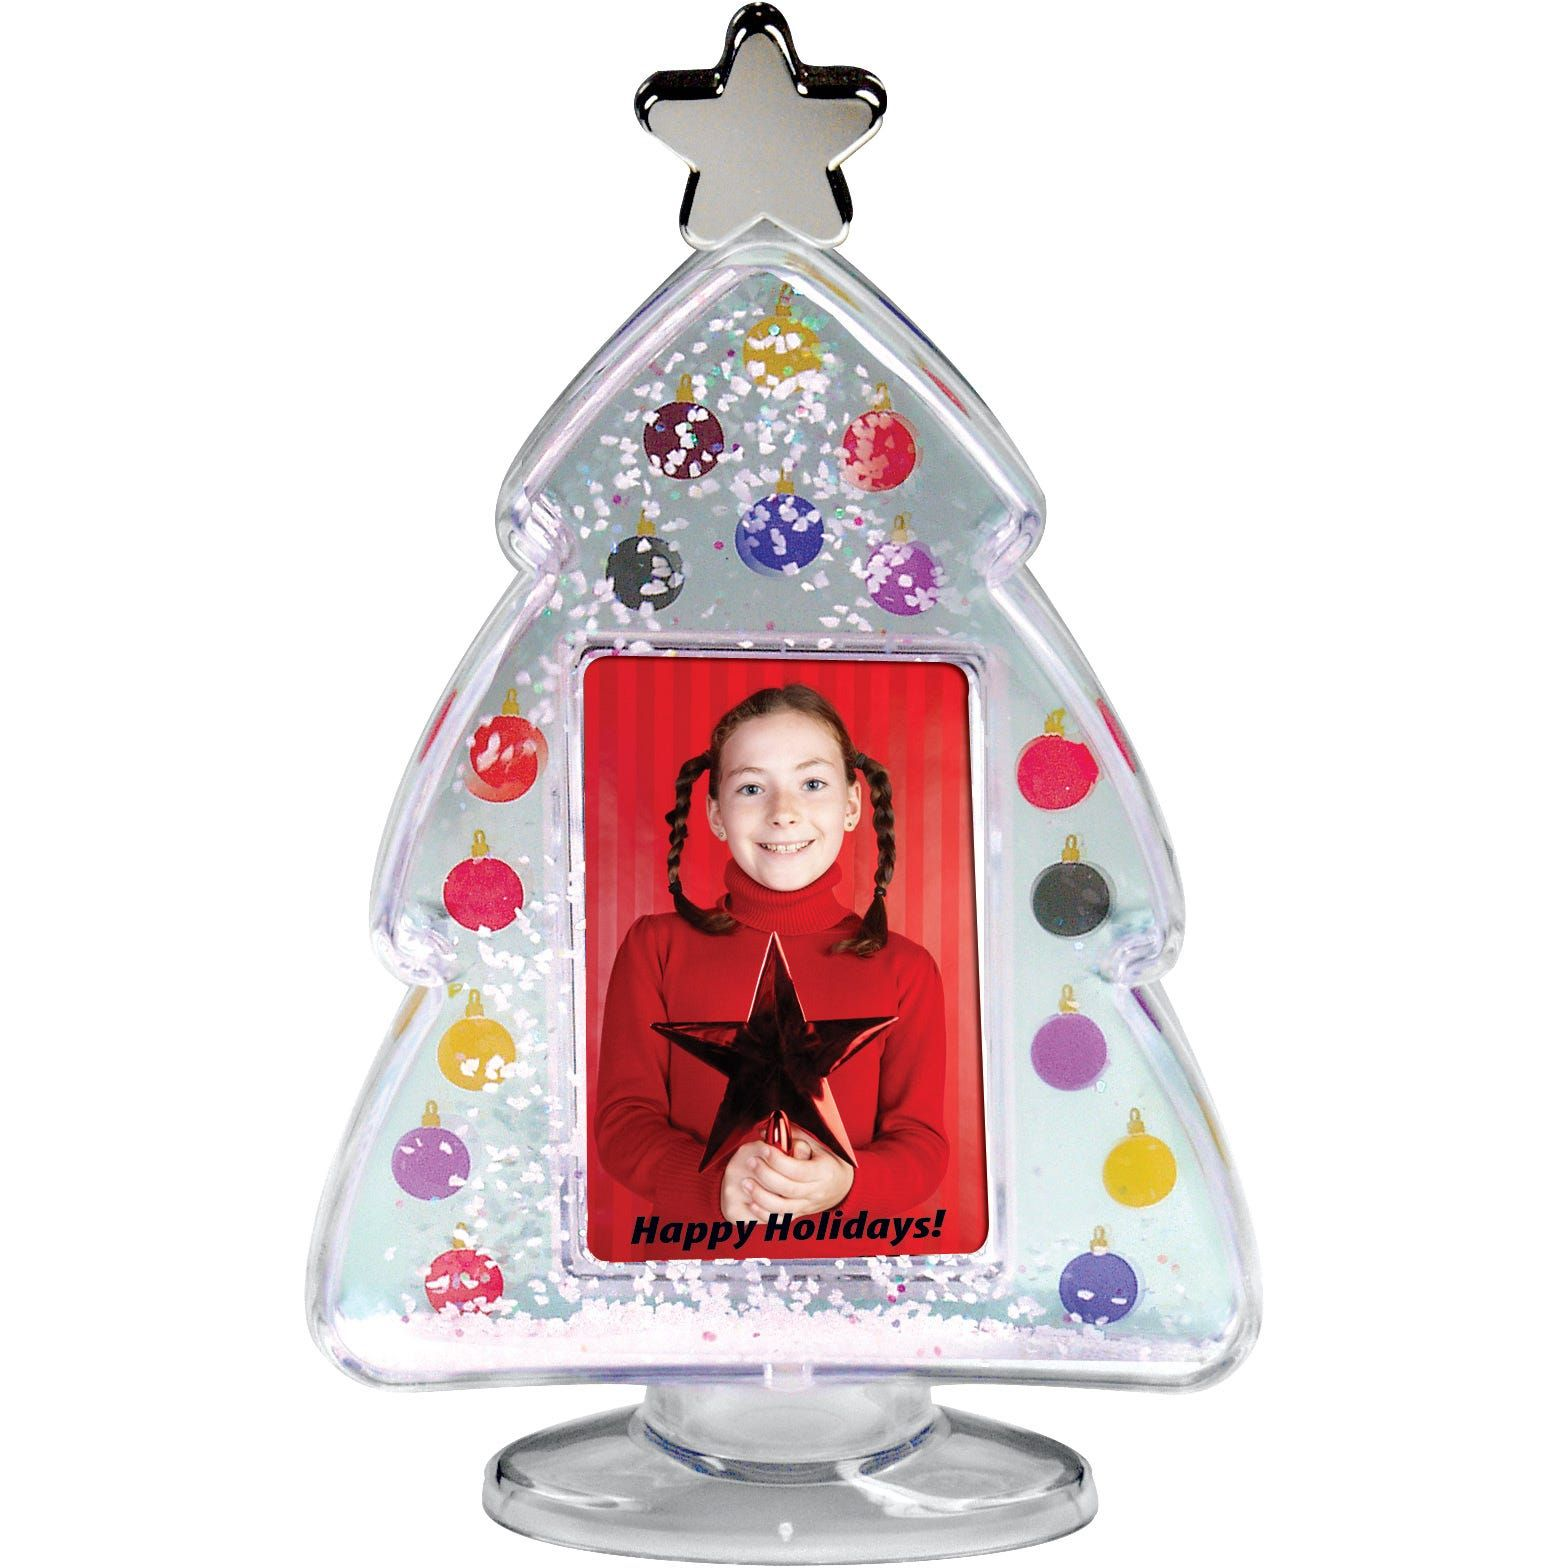 Promo Photo Christmas Tree Snow Globes Giveaway Frames